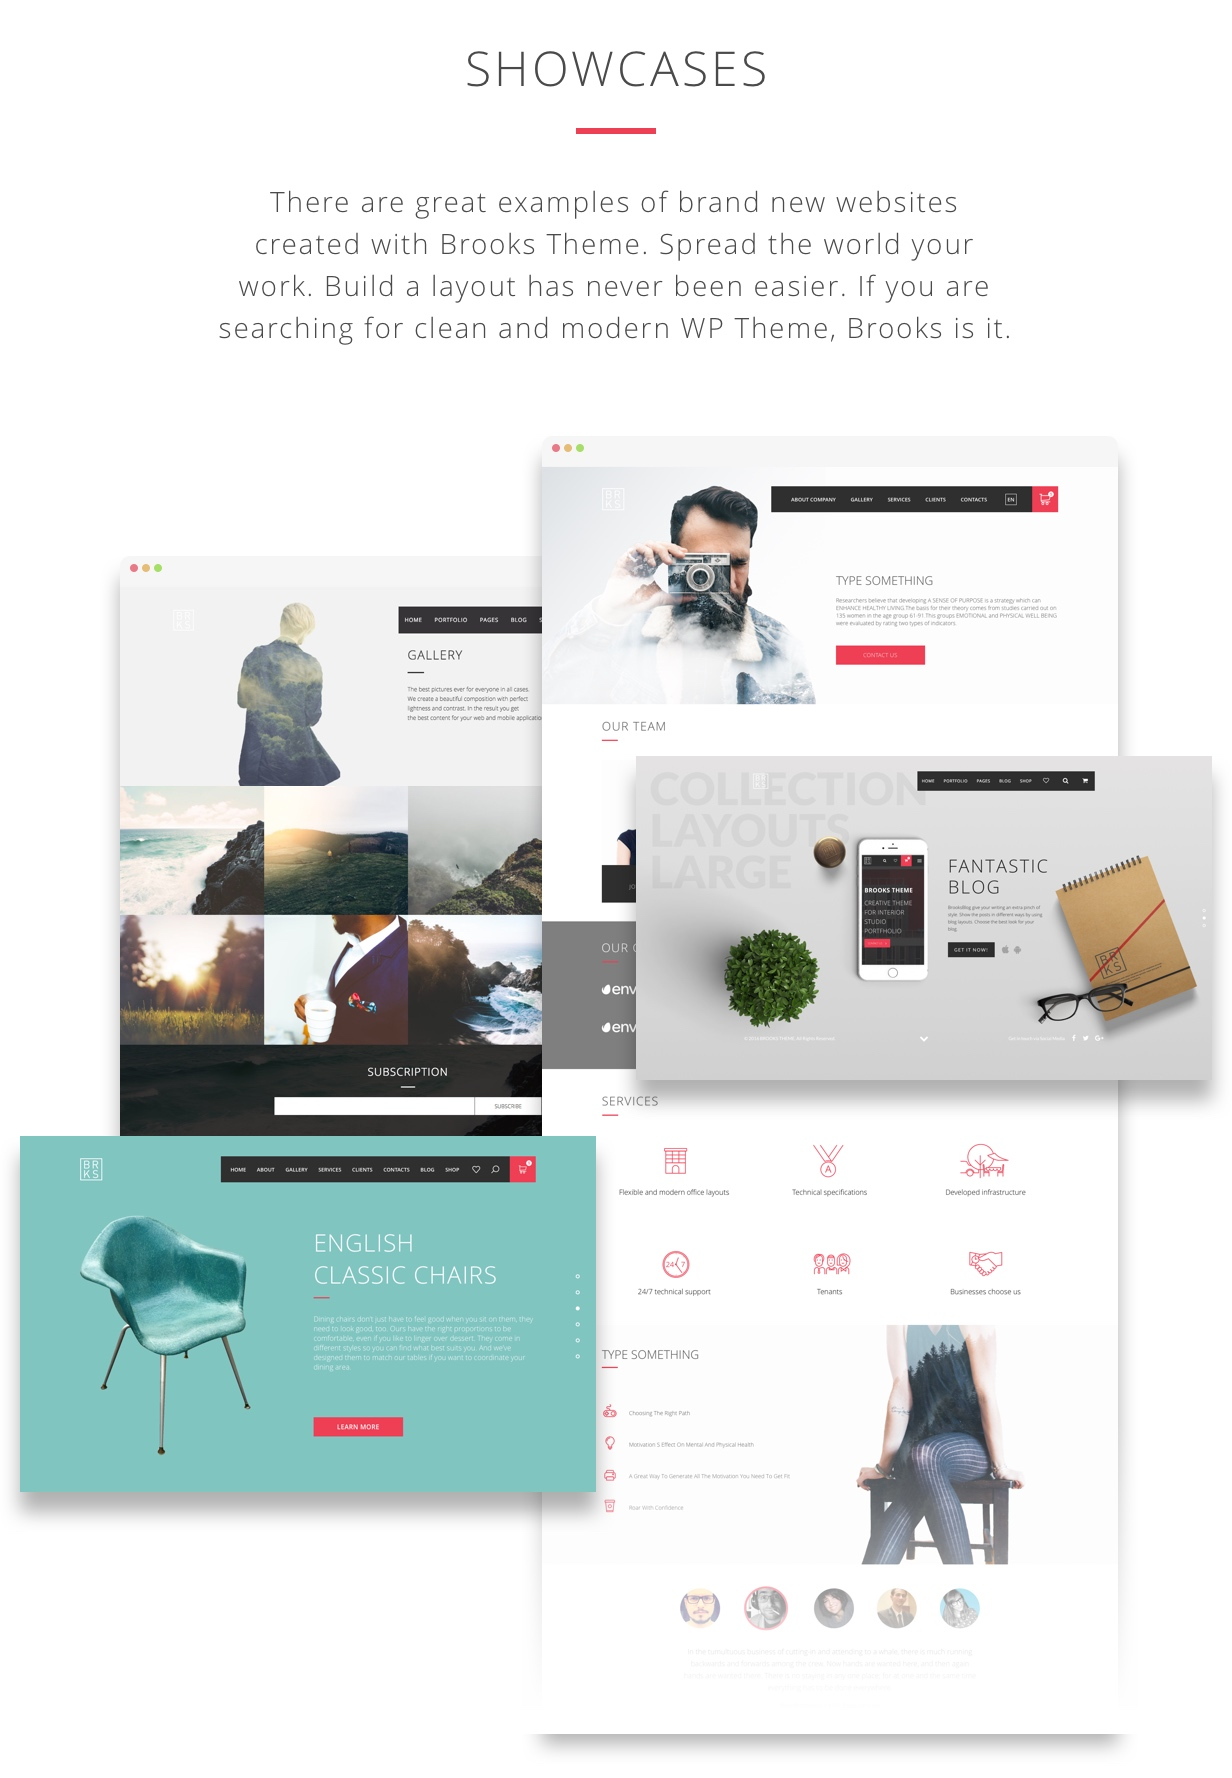 Showcases: there are great examples of brand new websites created with Brooks theme